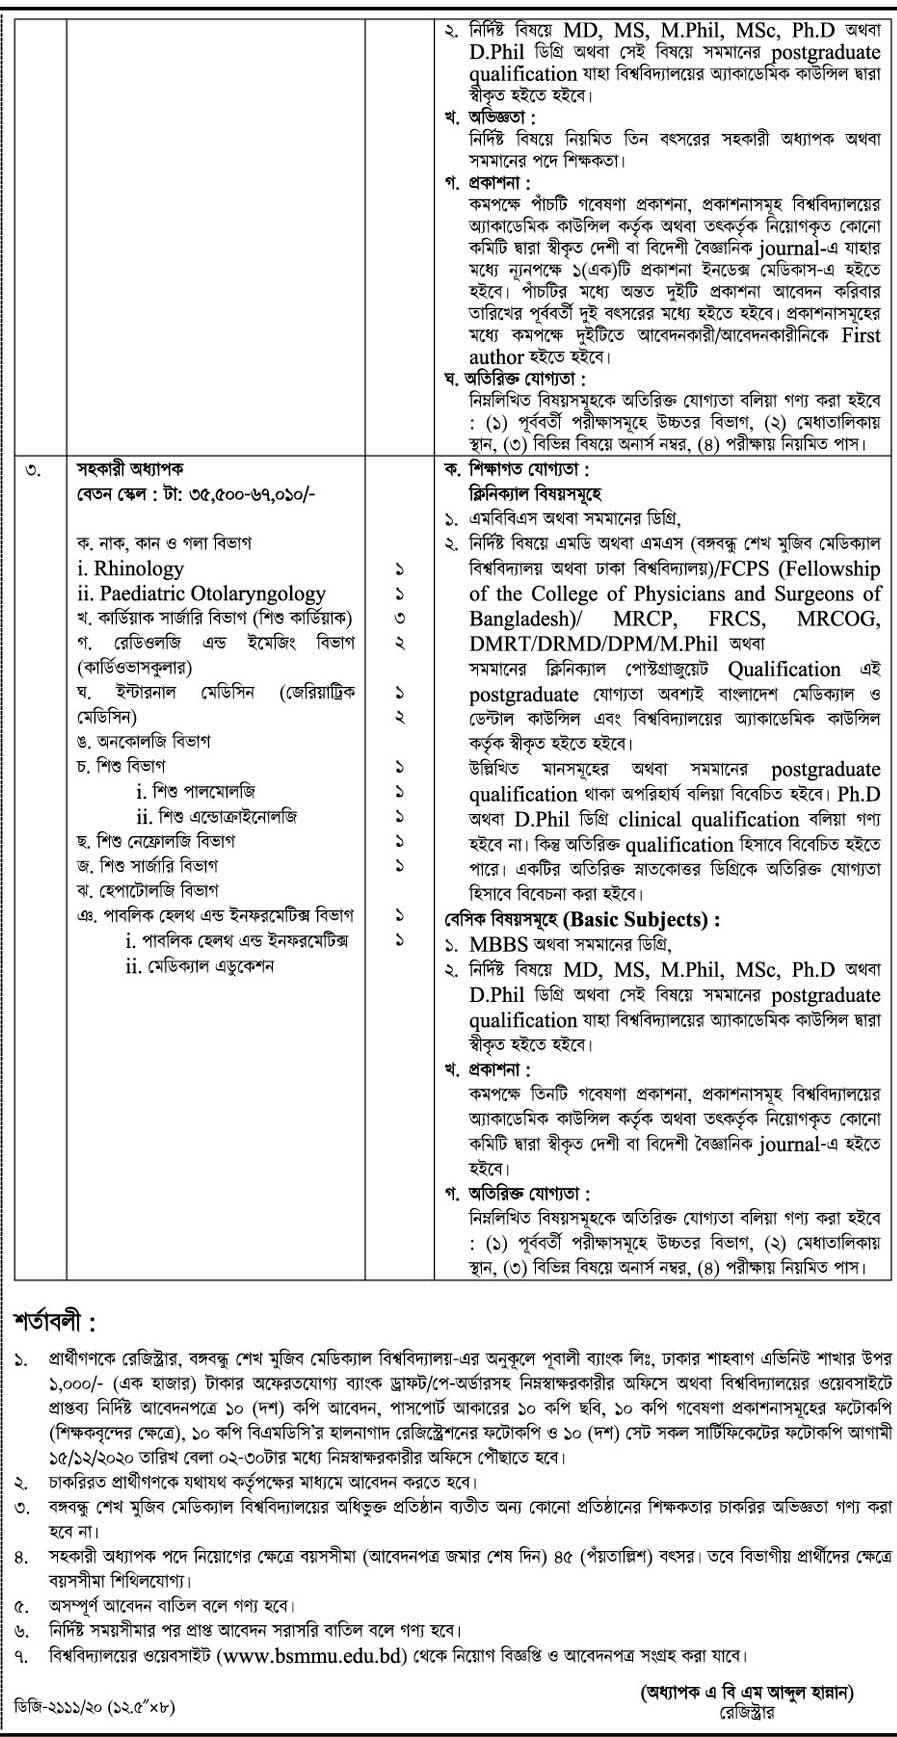 Bangabandhu Sheikh Mujib Medical University Job Circular